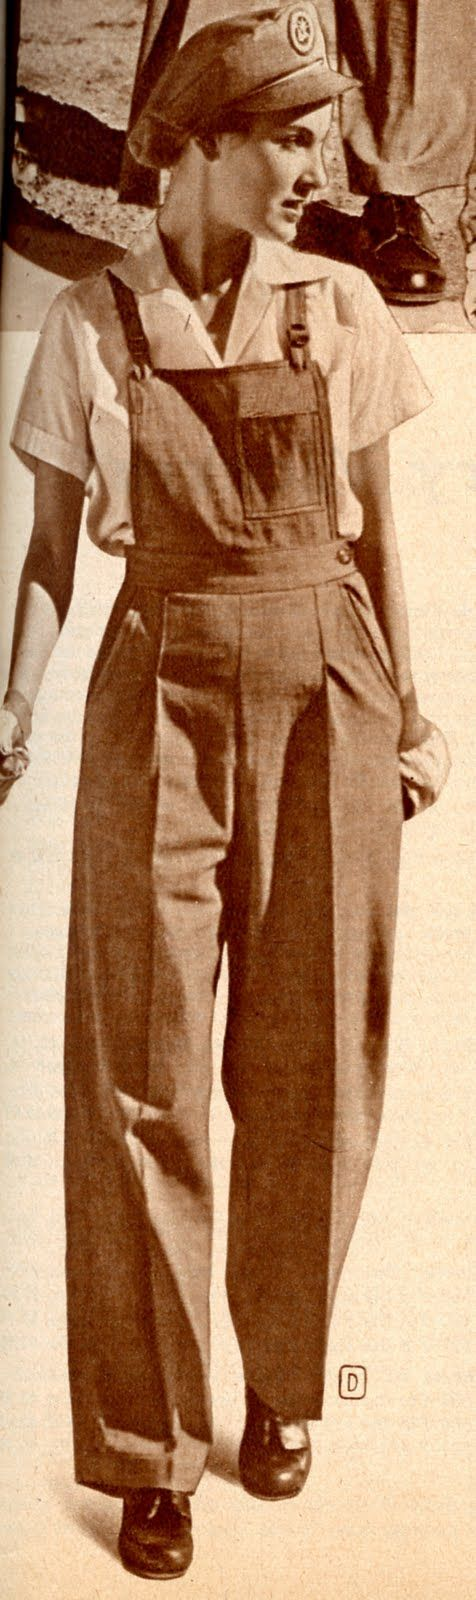 """""""...Wards offered a nice line of women's workwear featuring a """"Victory Volunteers"""" emblem.  These bib-top overalls were described as """"a sensible choice for your wartime job..."""""""